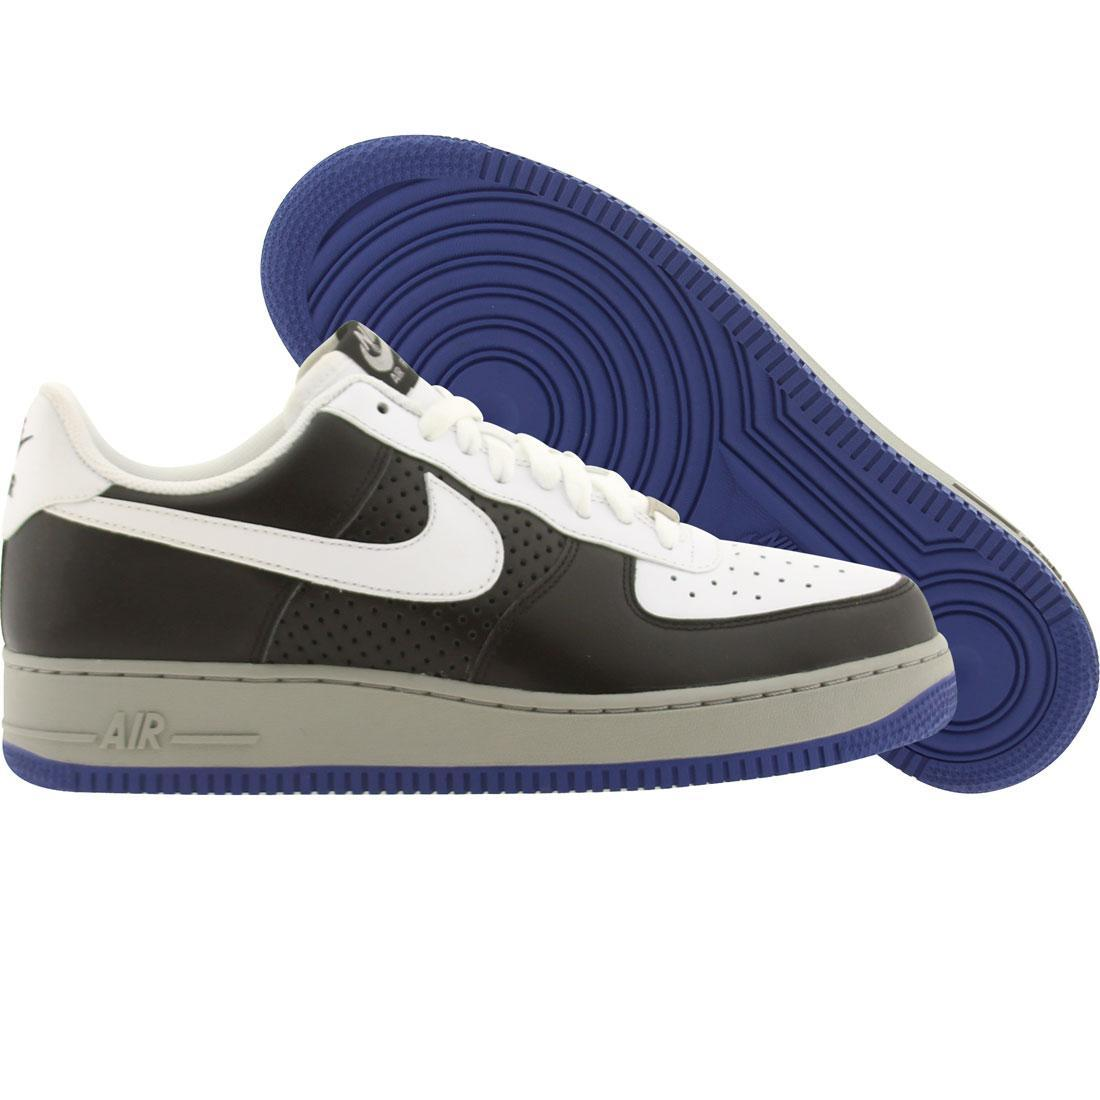 Buy nike air force 1 07 low white black > up to 39% Discounts